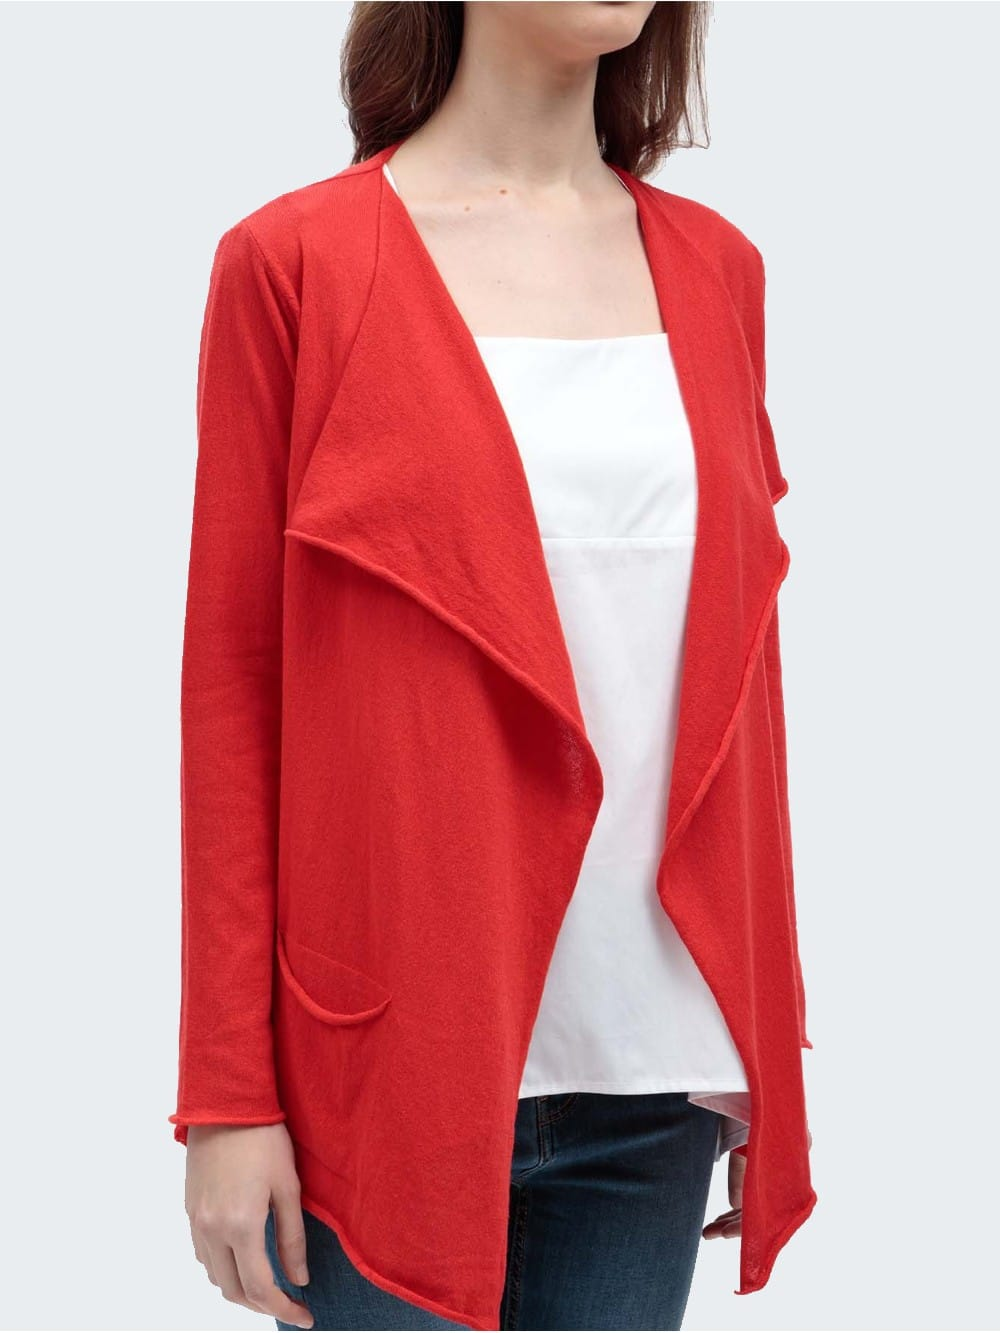 Cardigan mde of recycled materials-Naggen